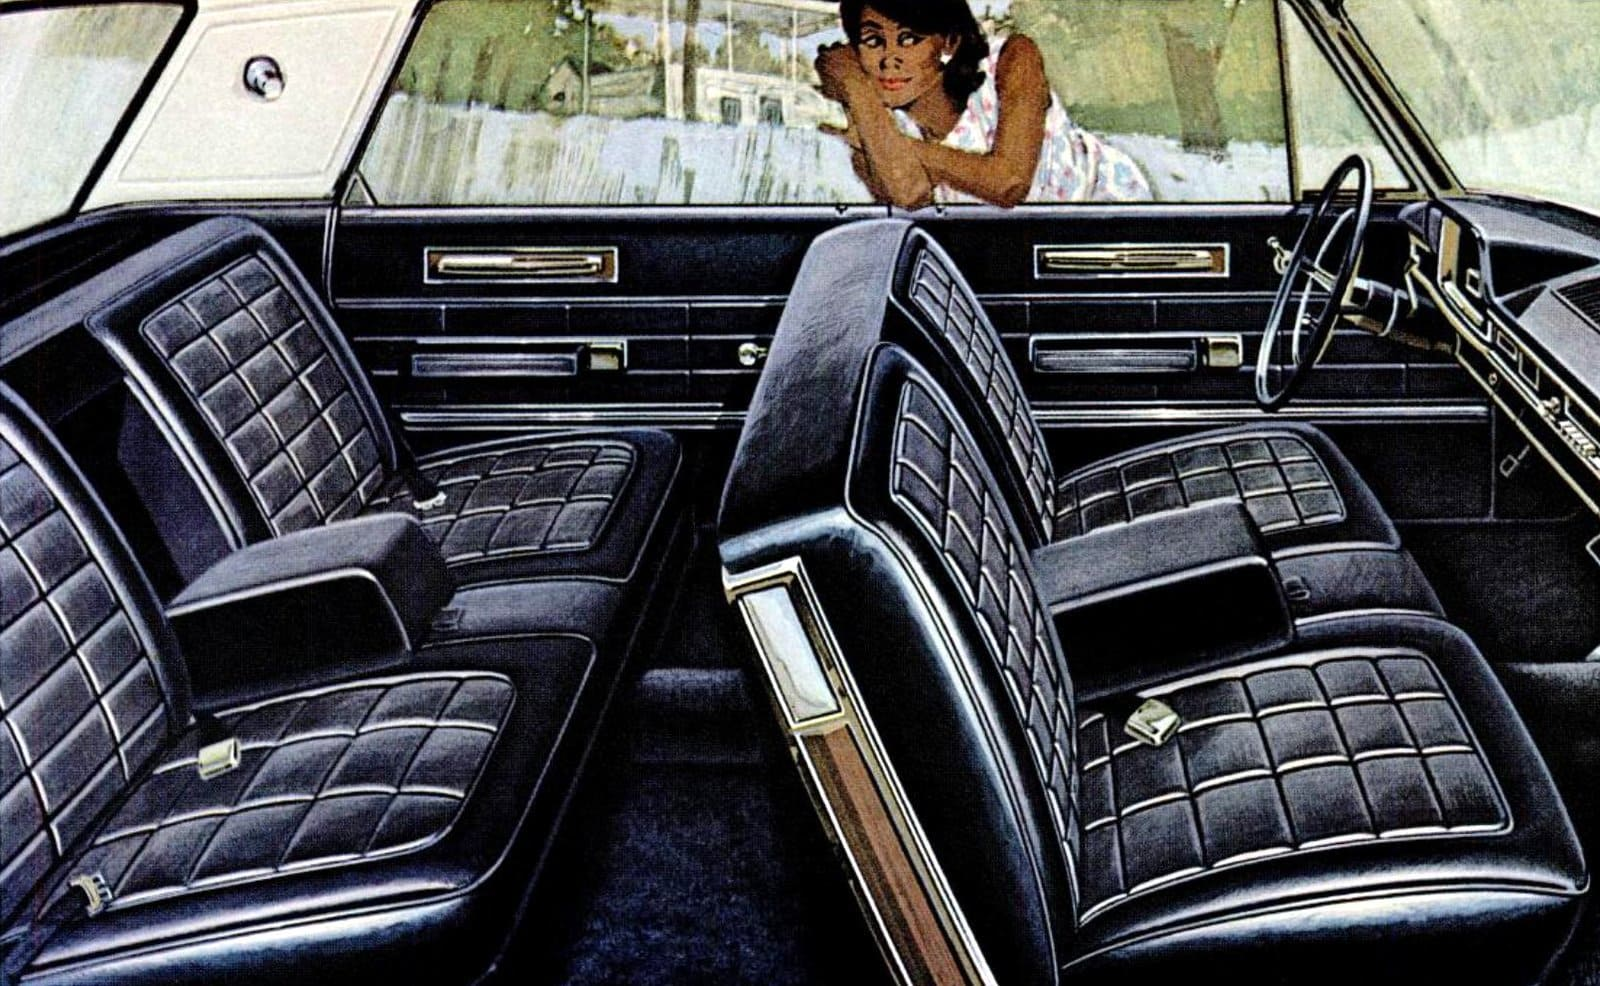 Interior of the '66 Plymouth VIP